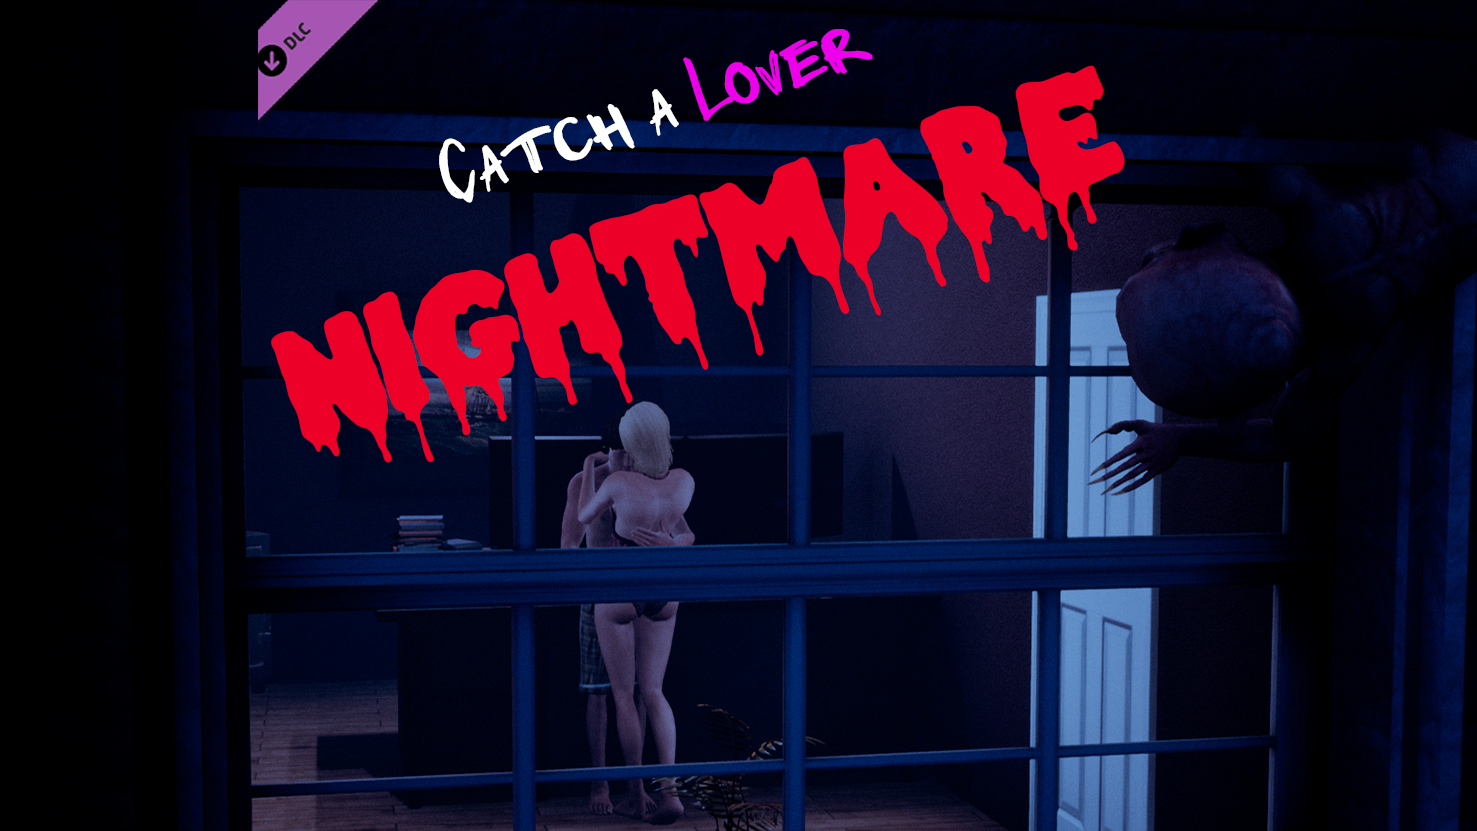 Catch a lover - review / analise | 03d9f11b84792a886fe0cf38d3580591110b87a0 | married games análises | catch a lover